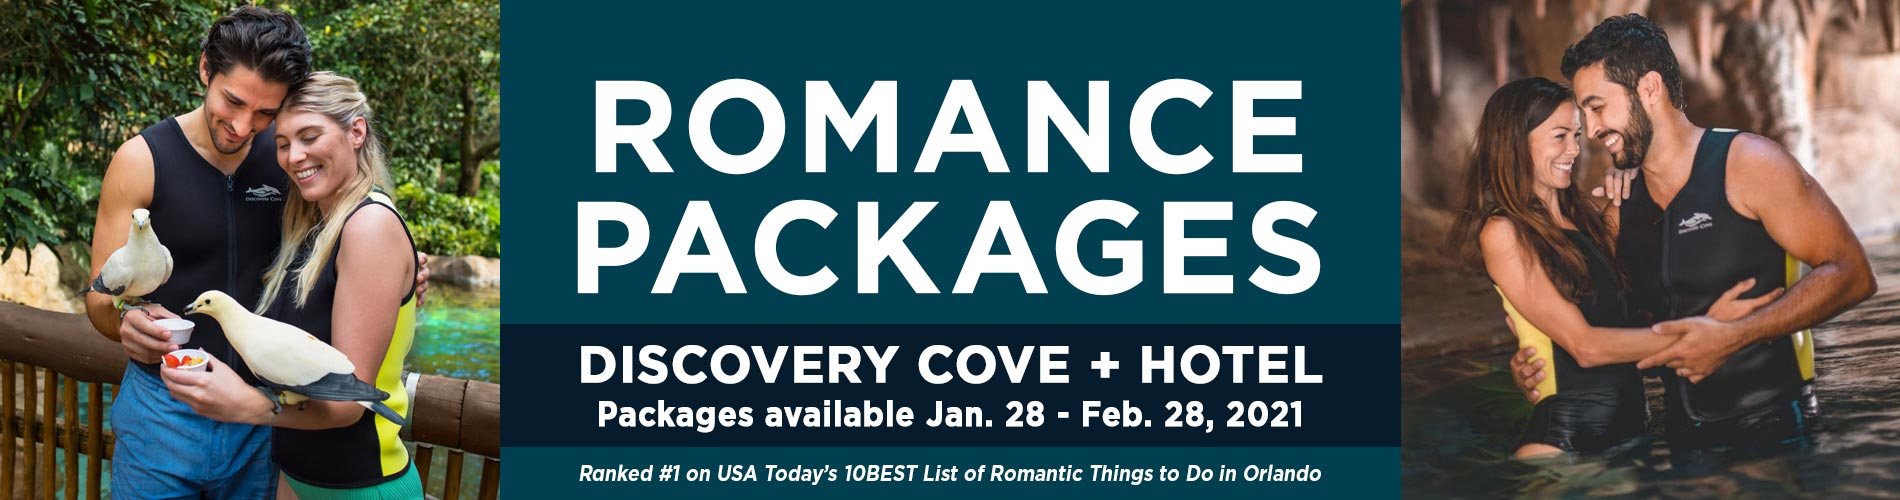 Purchase a Romance Package to enjoy a local Orlando Hotel and admission to Discovery Cove